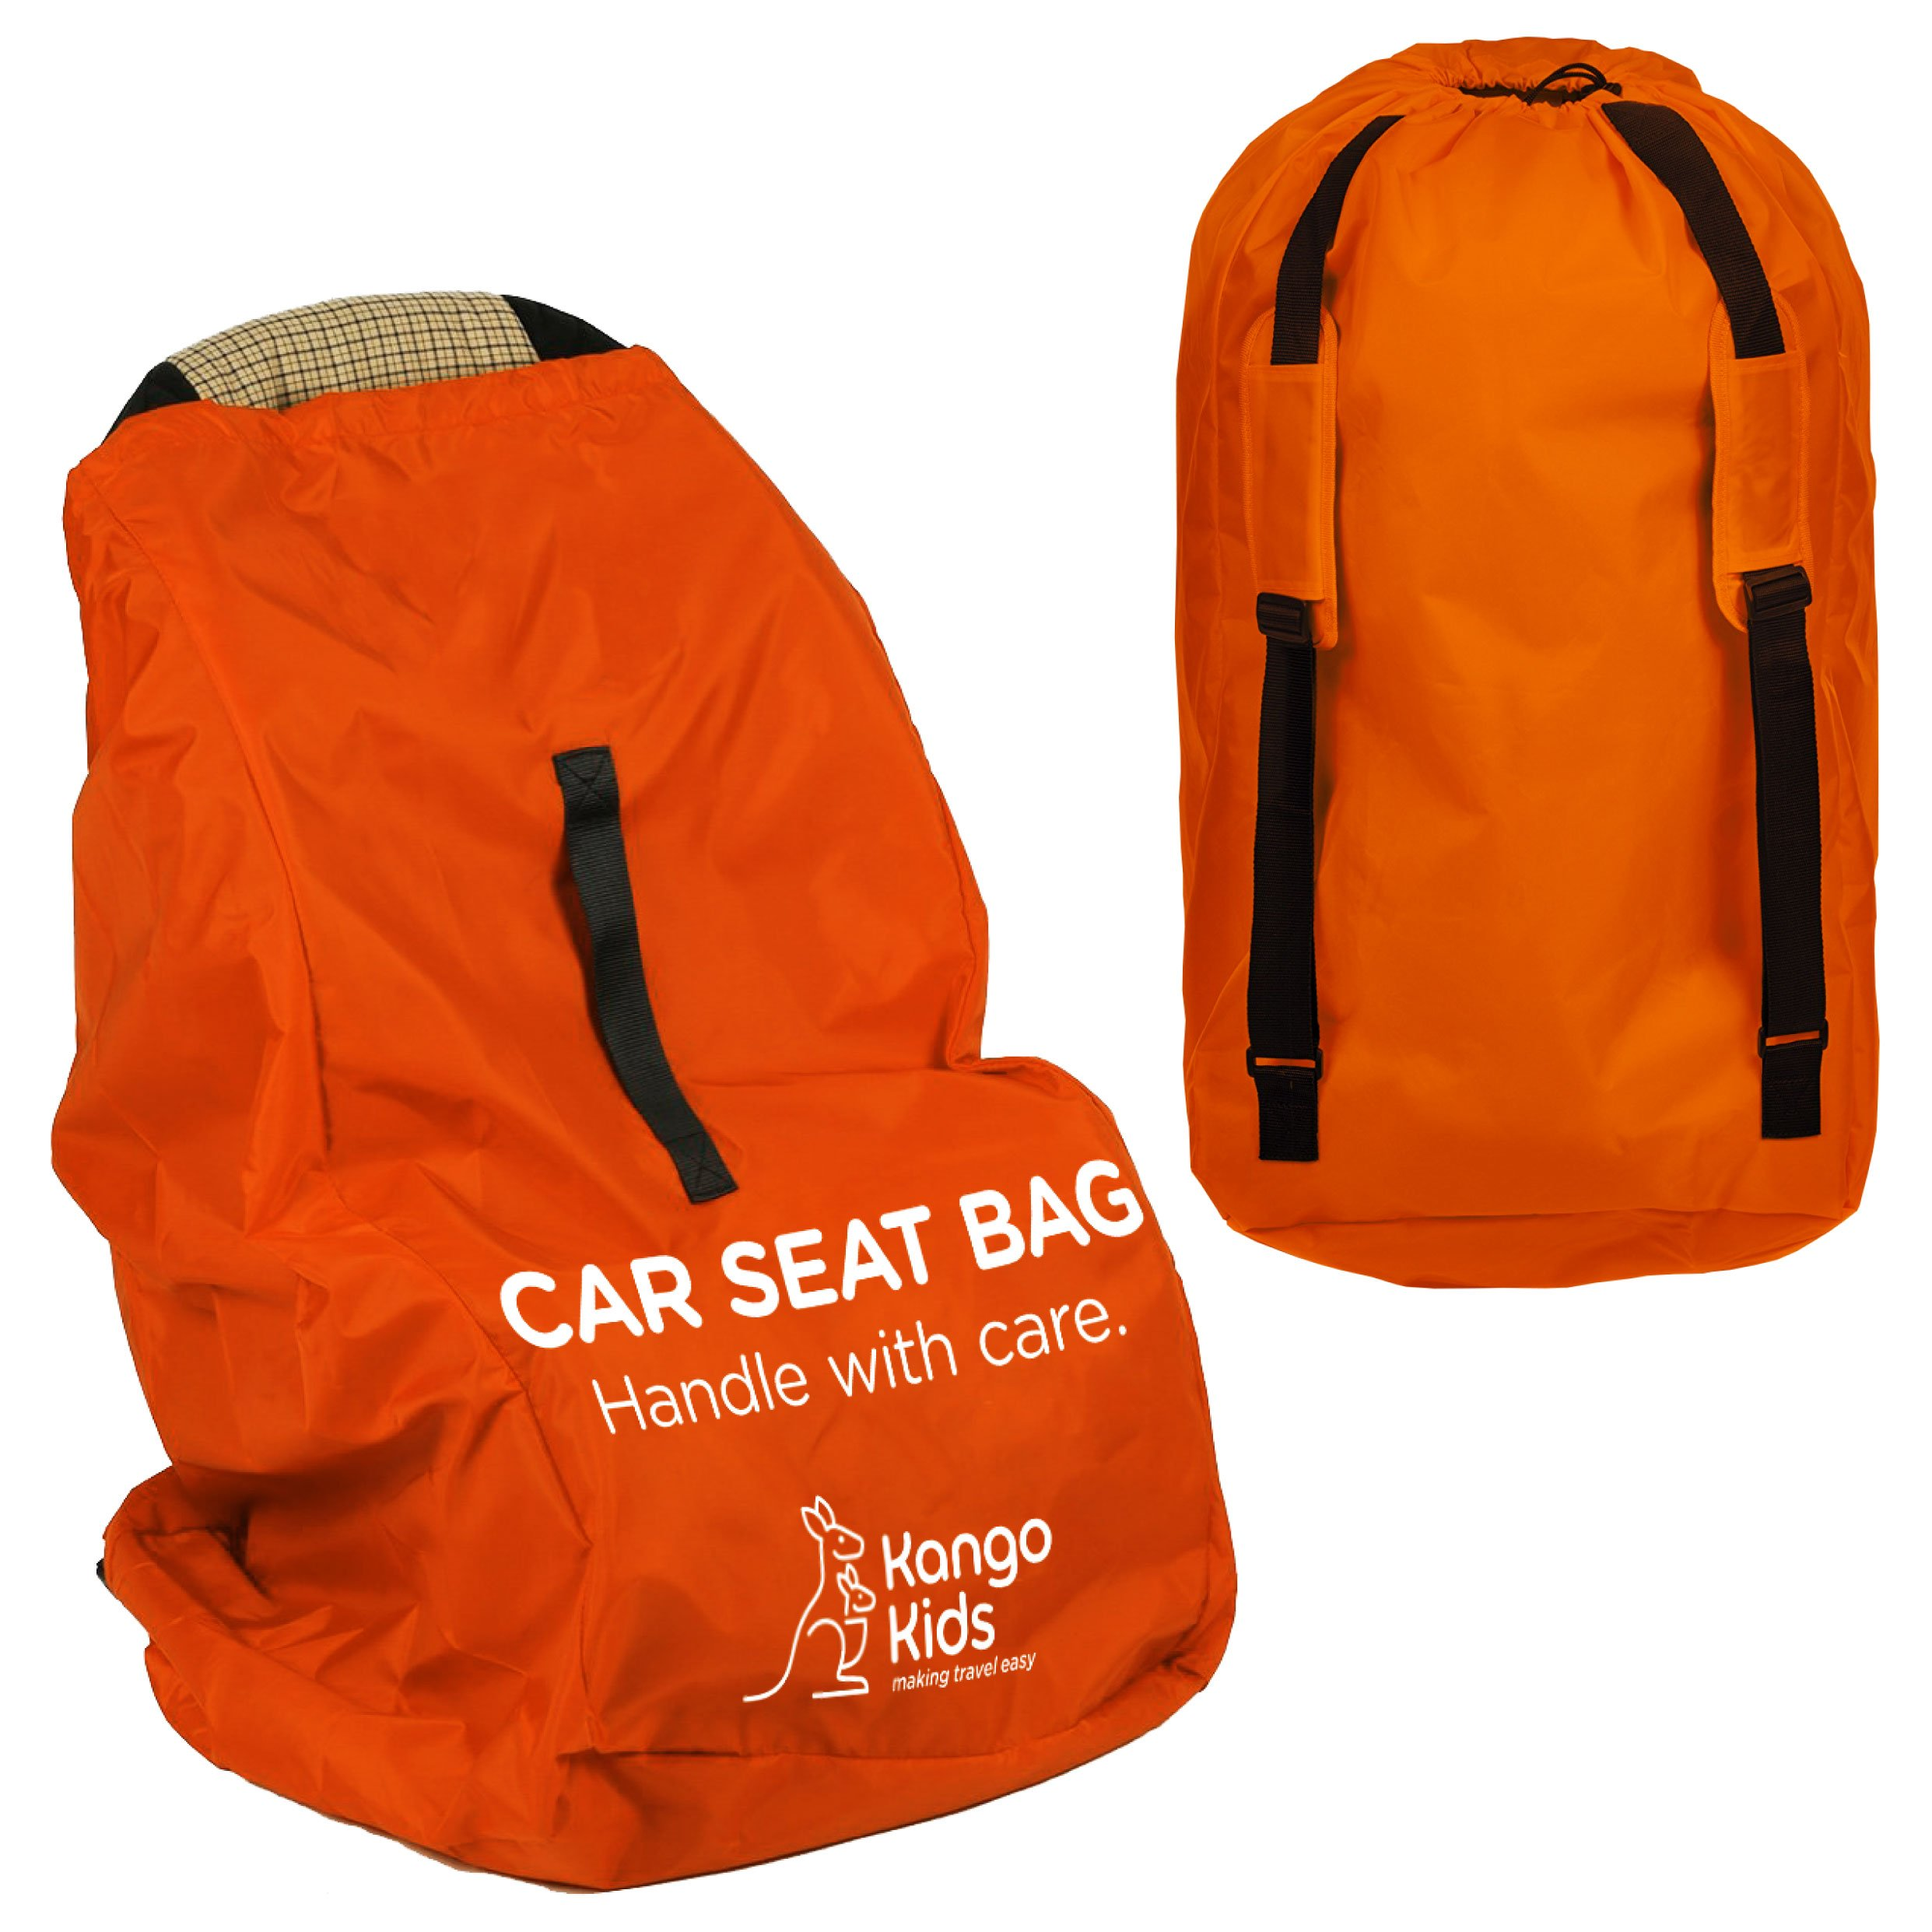 Car Seat Travel Bag Make Easier Save Money Carseat Carrier For Airport